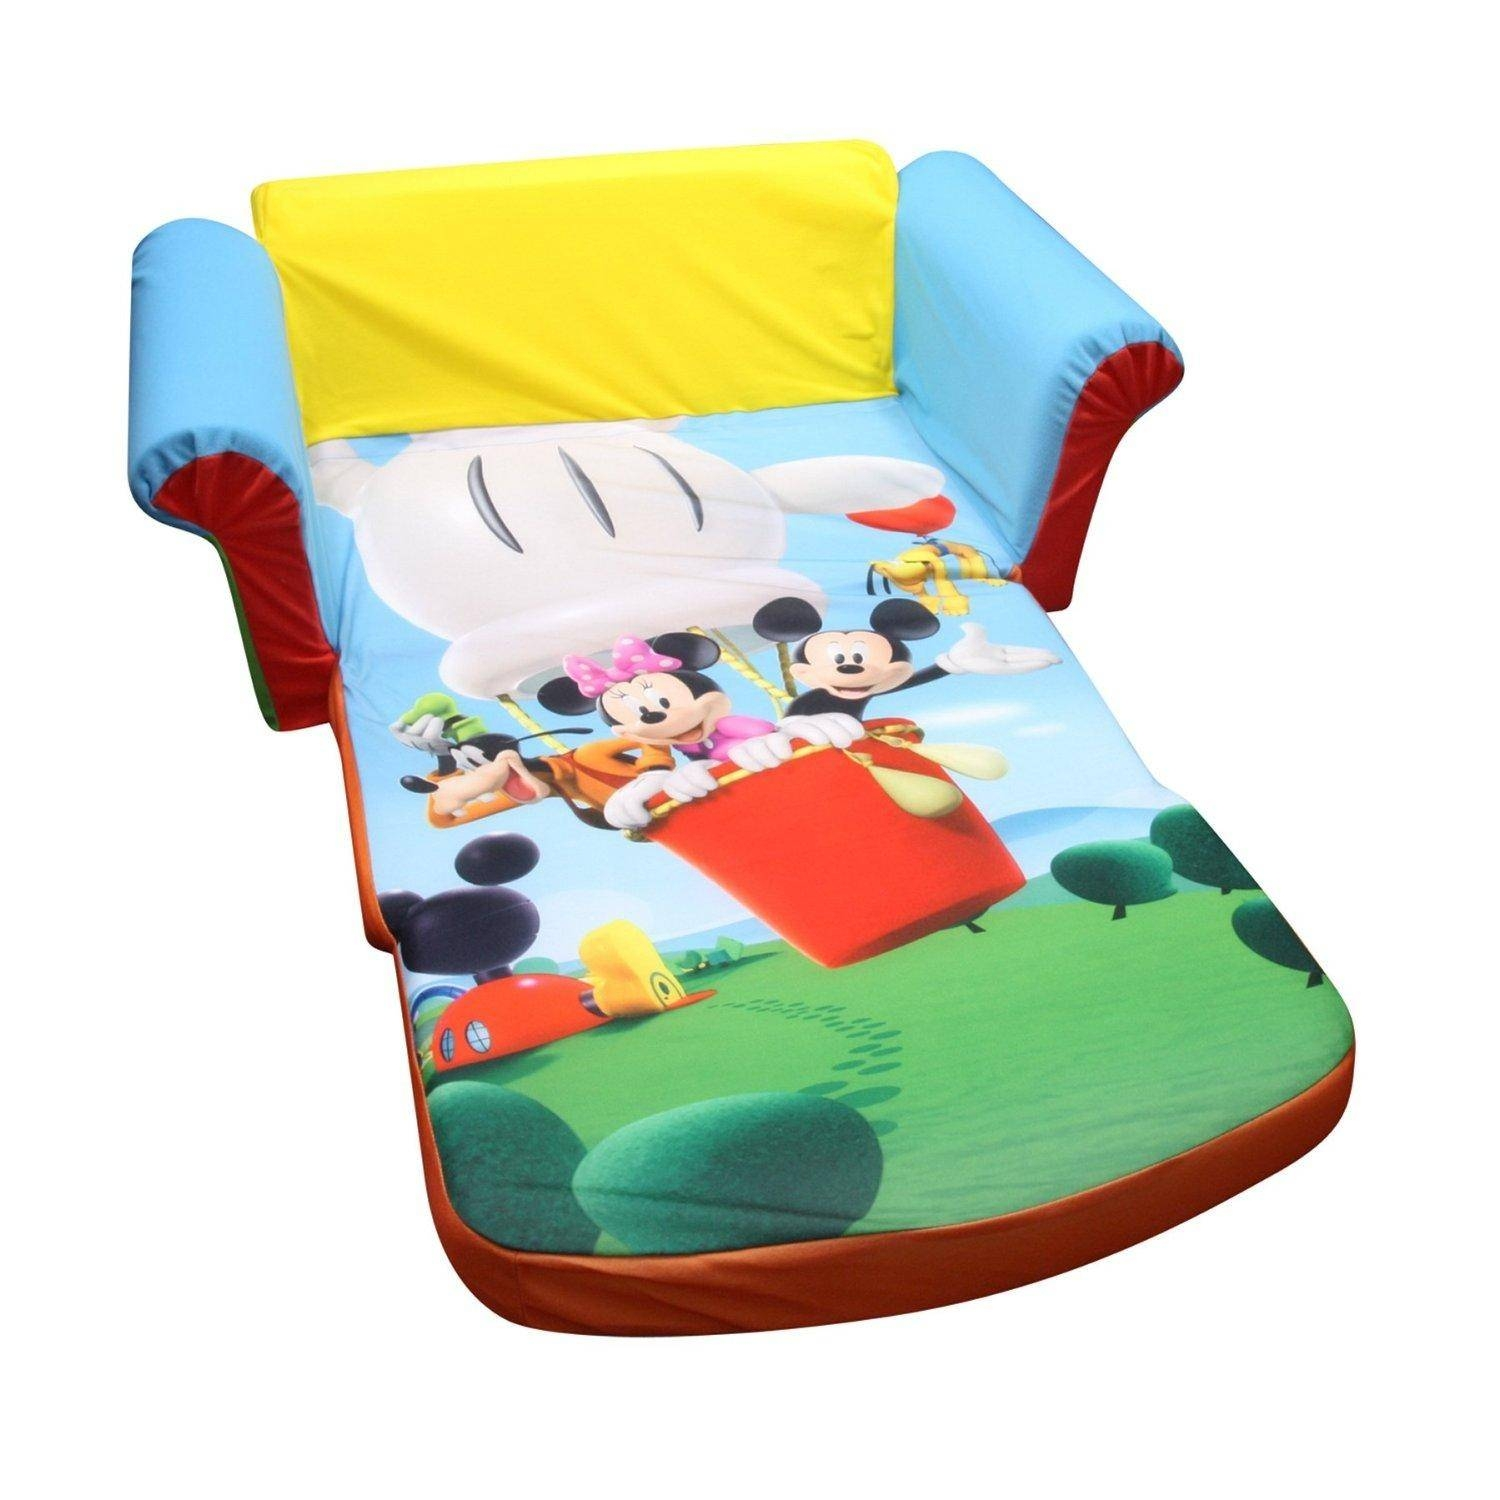 20 Collection Of Mickey Fold Out Couches | Sofa Ideas regarding Mickey Fold Out Couches (Image 3 of 15)